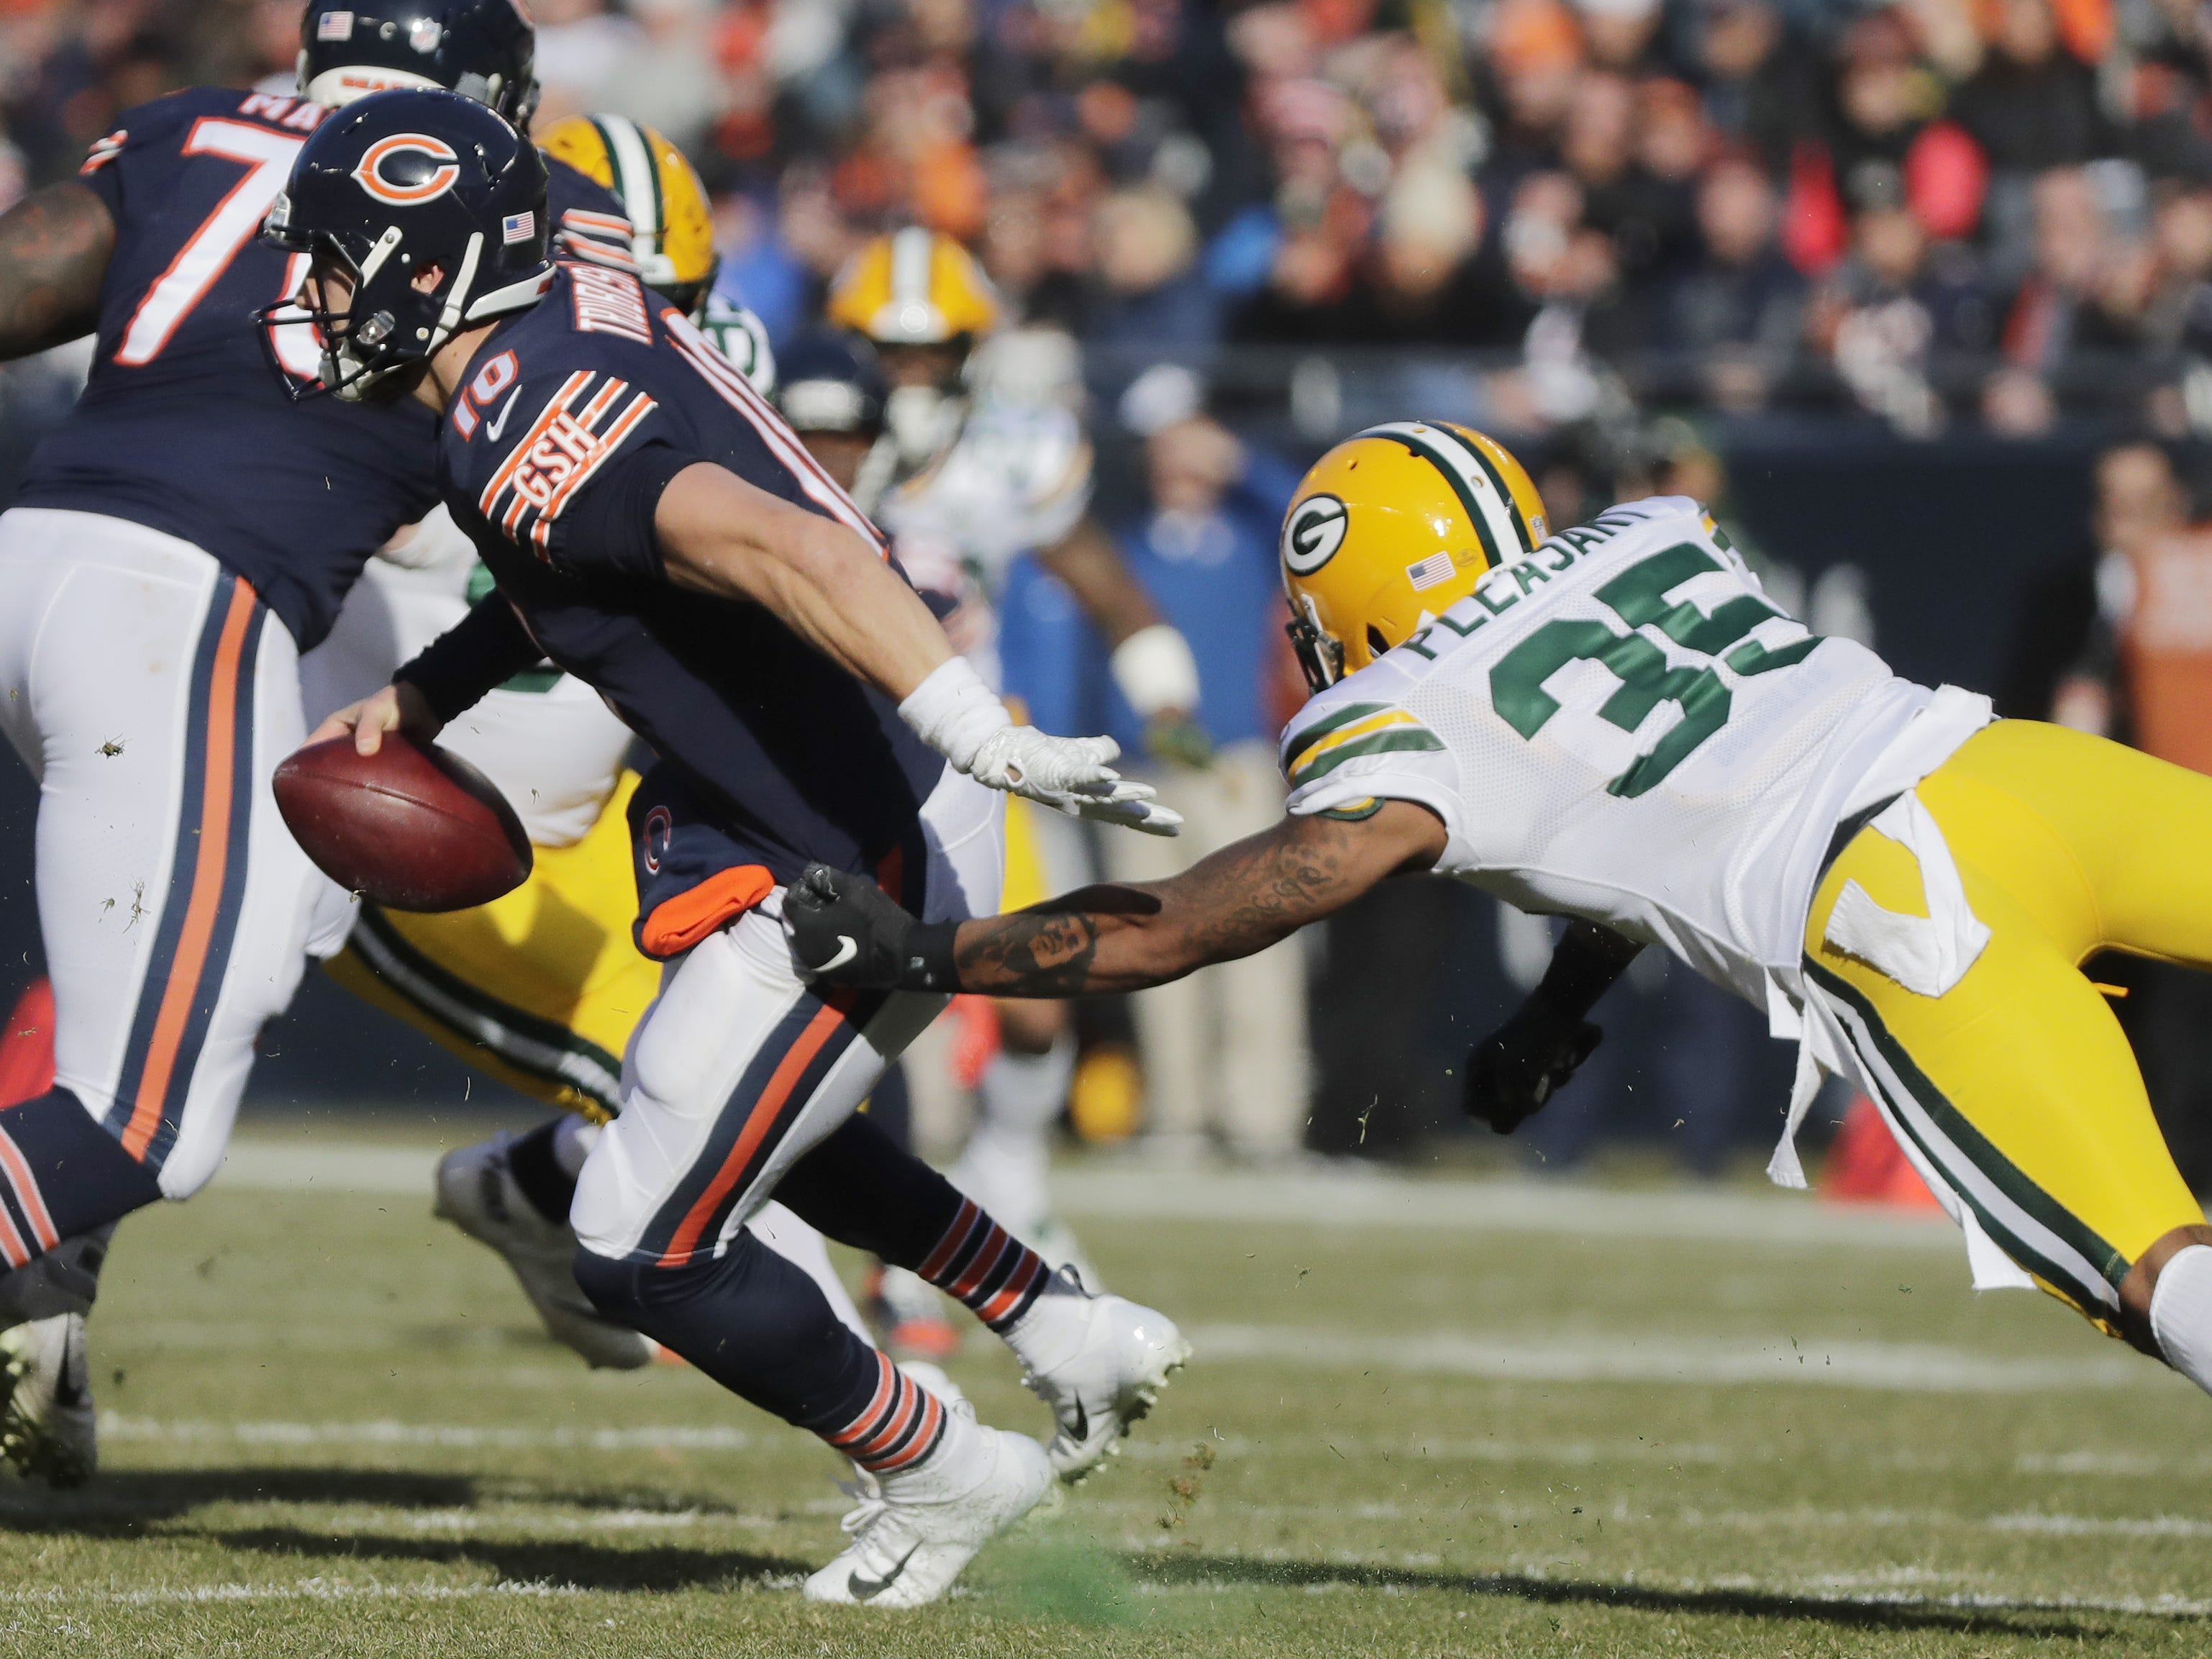 Chicago Bears quarterback Mitchell Trubisky (10) eludes pressure from Green Bay Packers defensive back Eddie Pleasant (35) in the second quarter at Soldier Field on Sunday, December 16, 2018 in Chicago, Illinois. Adam Wesley/USA TODAY NETWORK-Wis